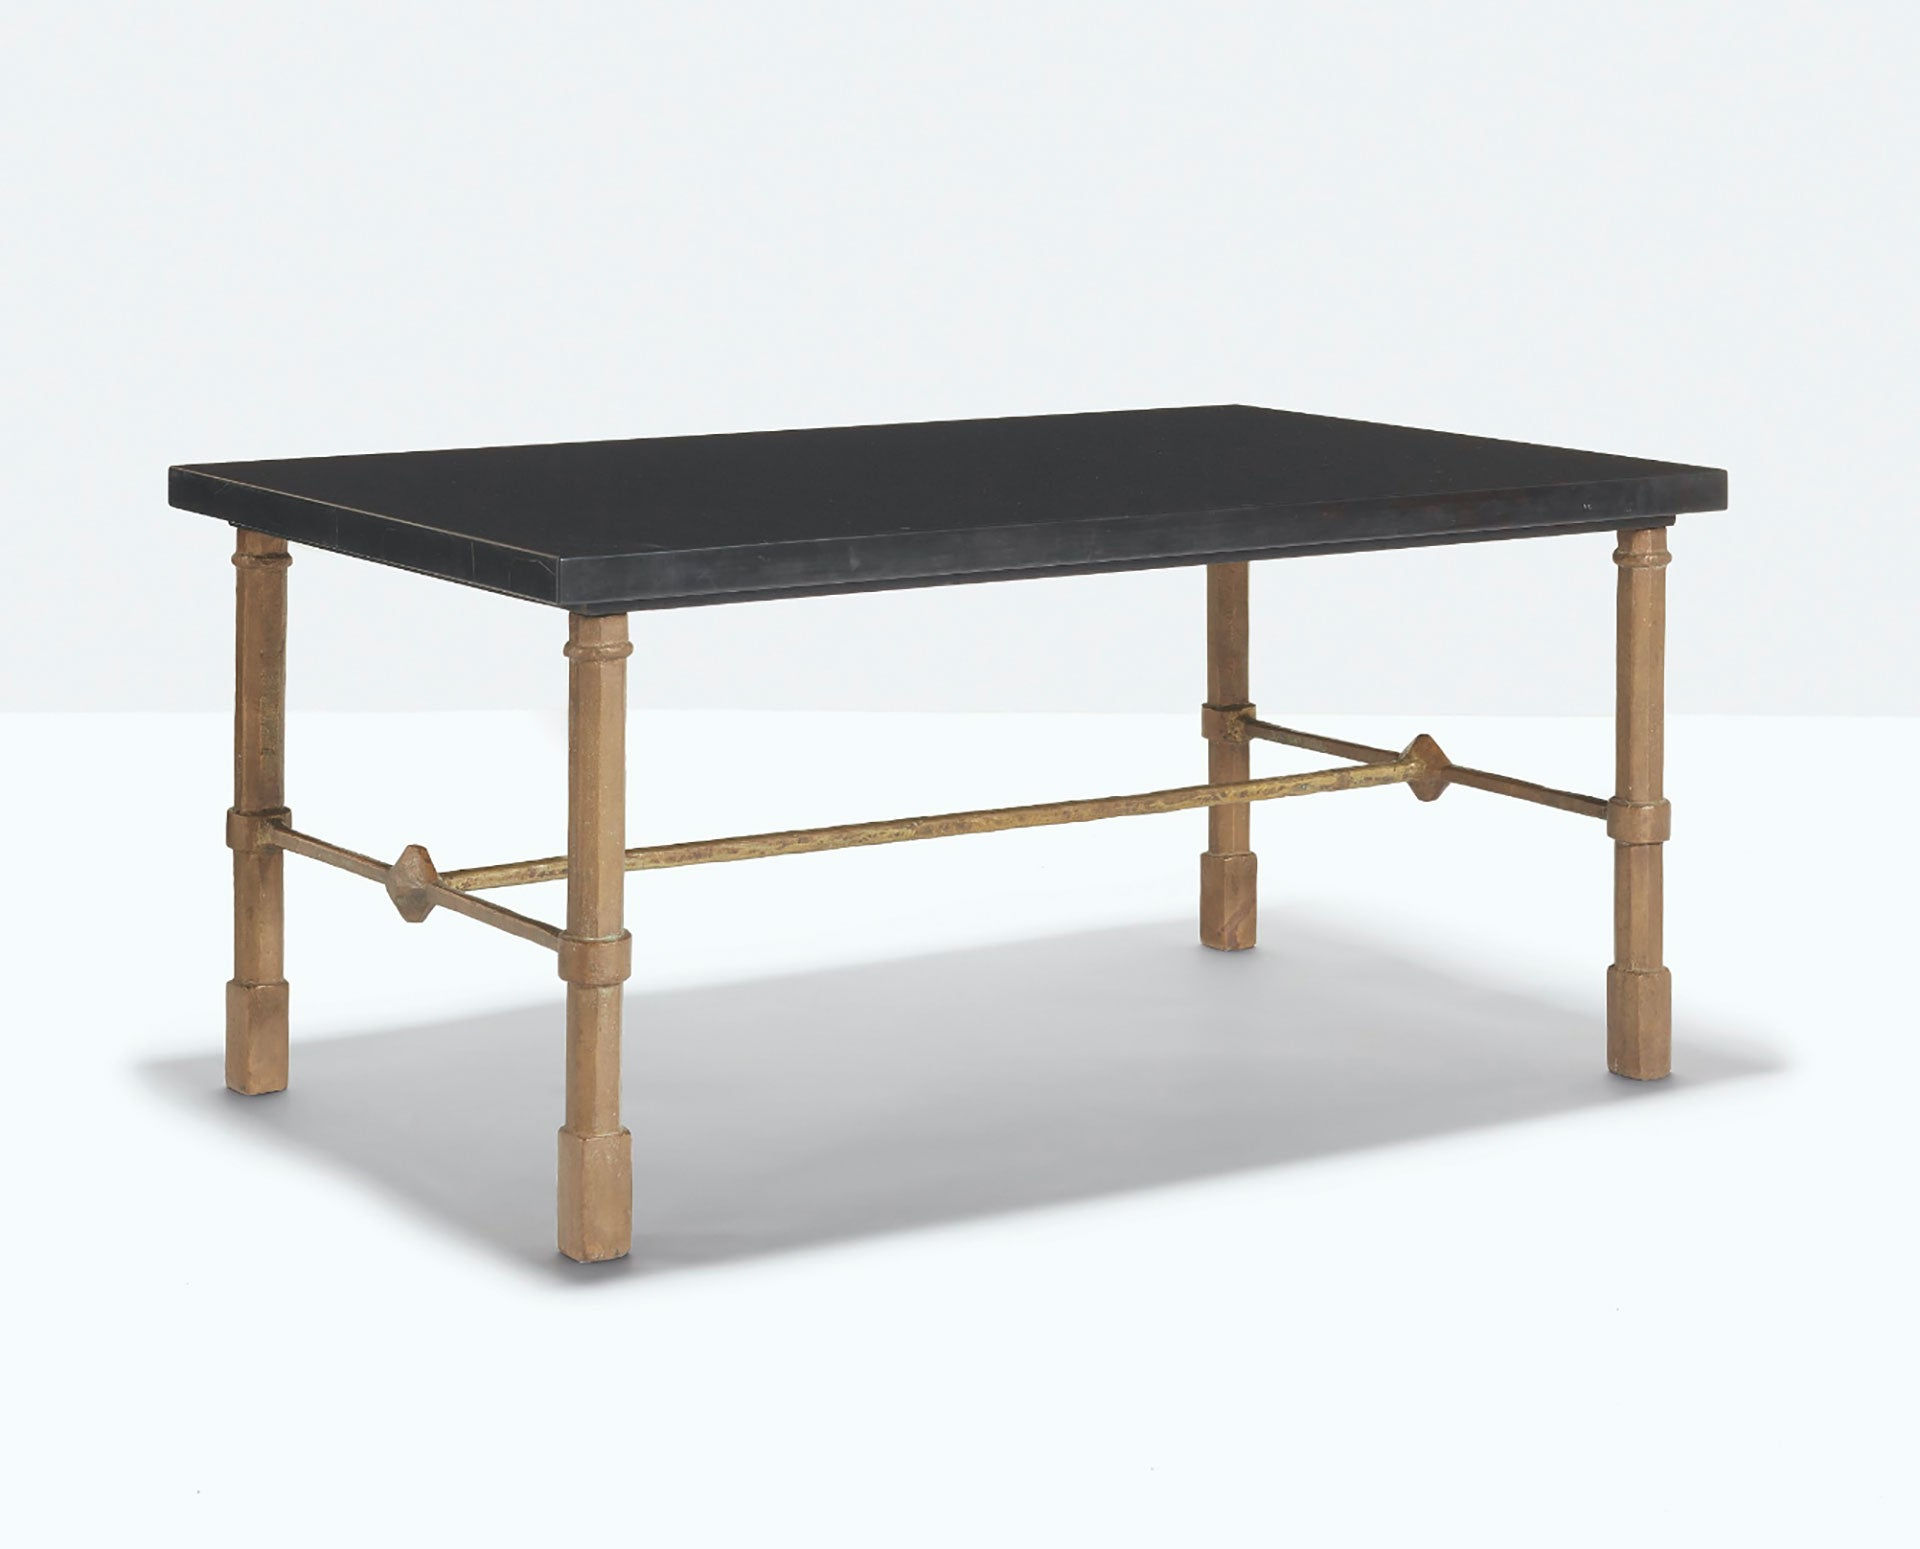 Table basse rectangulaire aux pattes octogonales/ Diego Giacometti, 1957/ Patinated bronze, painted wrought iron and Belgium black marble/ Courtesy of Bailly Gallery